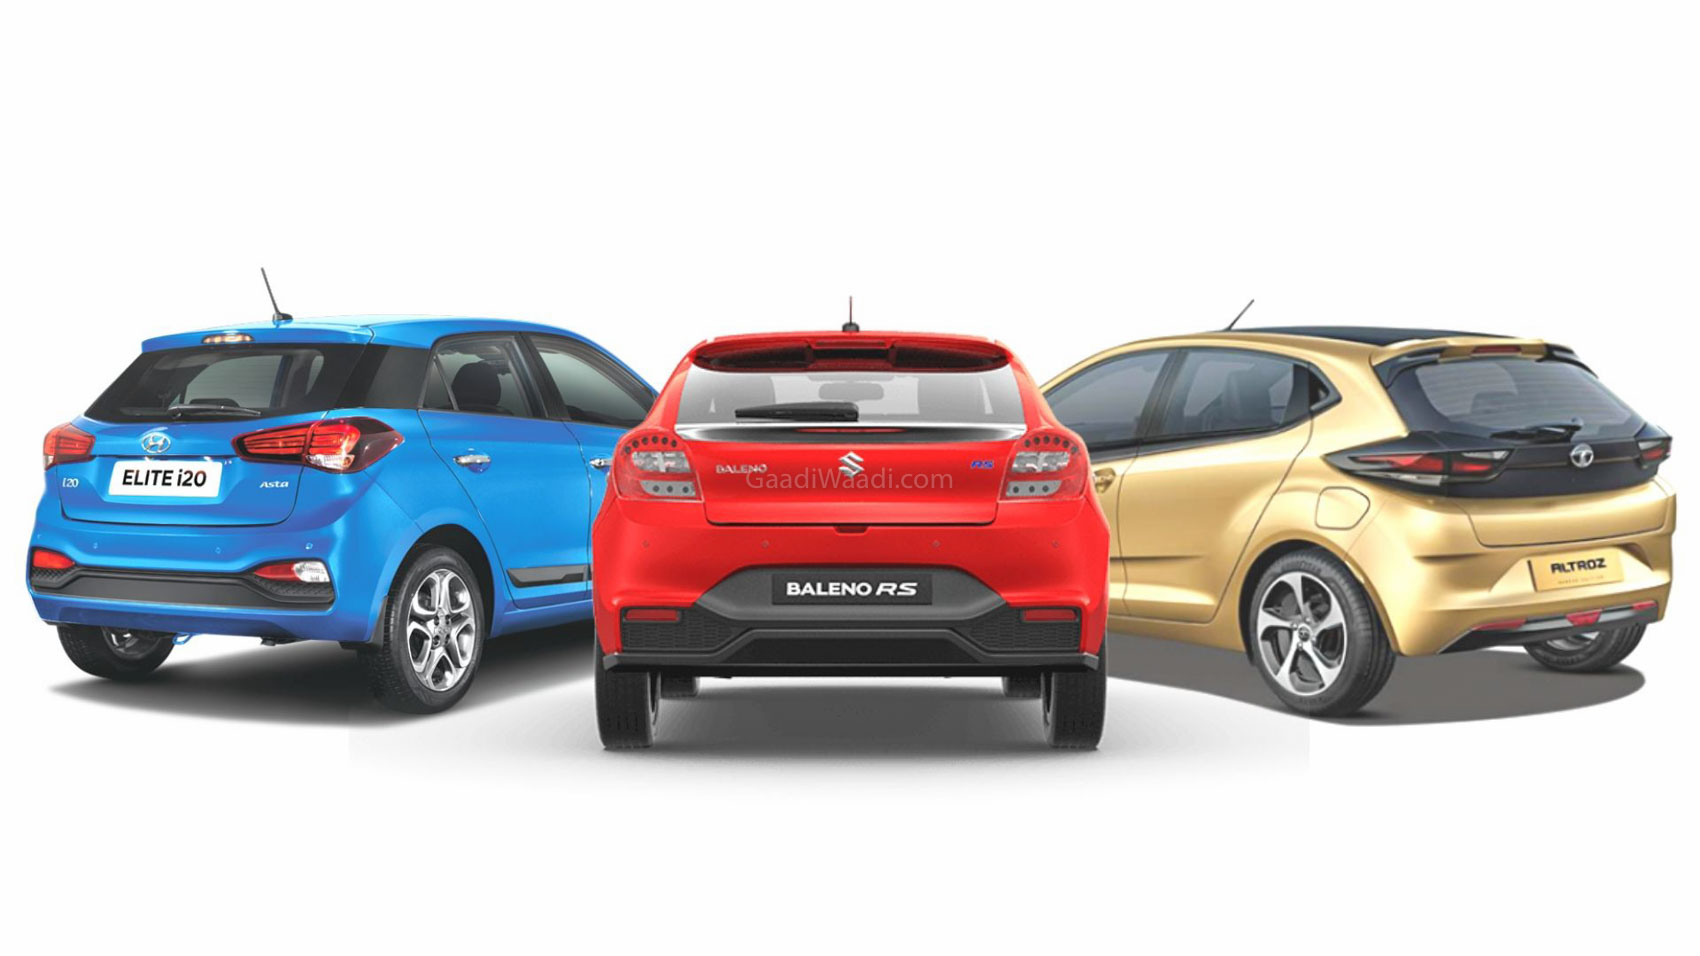 Premium Hatchback May 2020 Sales Analysis – Baleno, Altroz, i20, Glanza, Polo